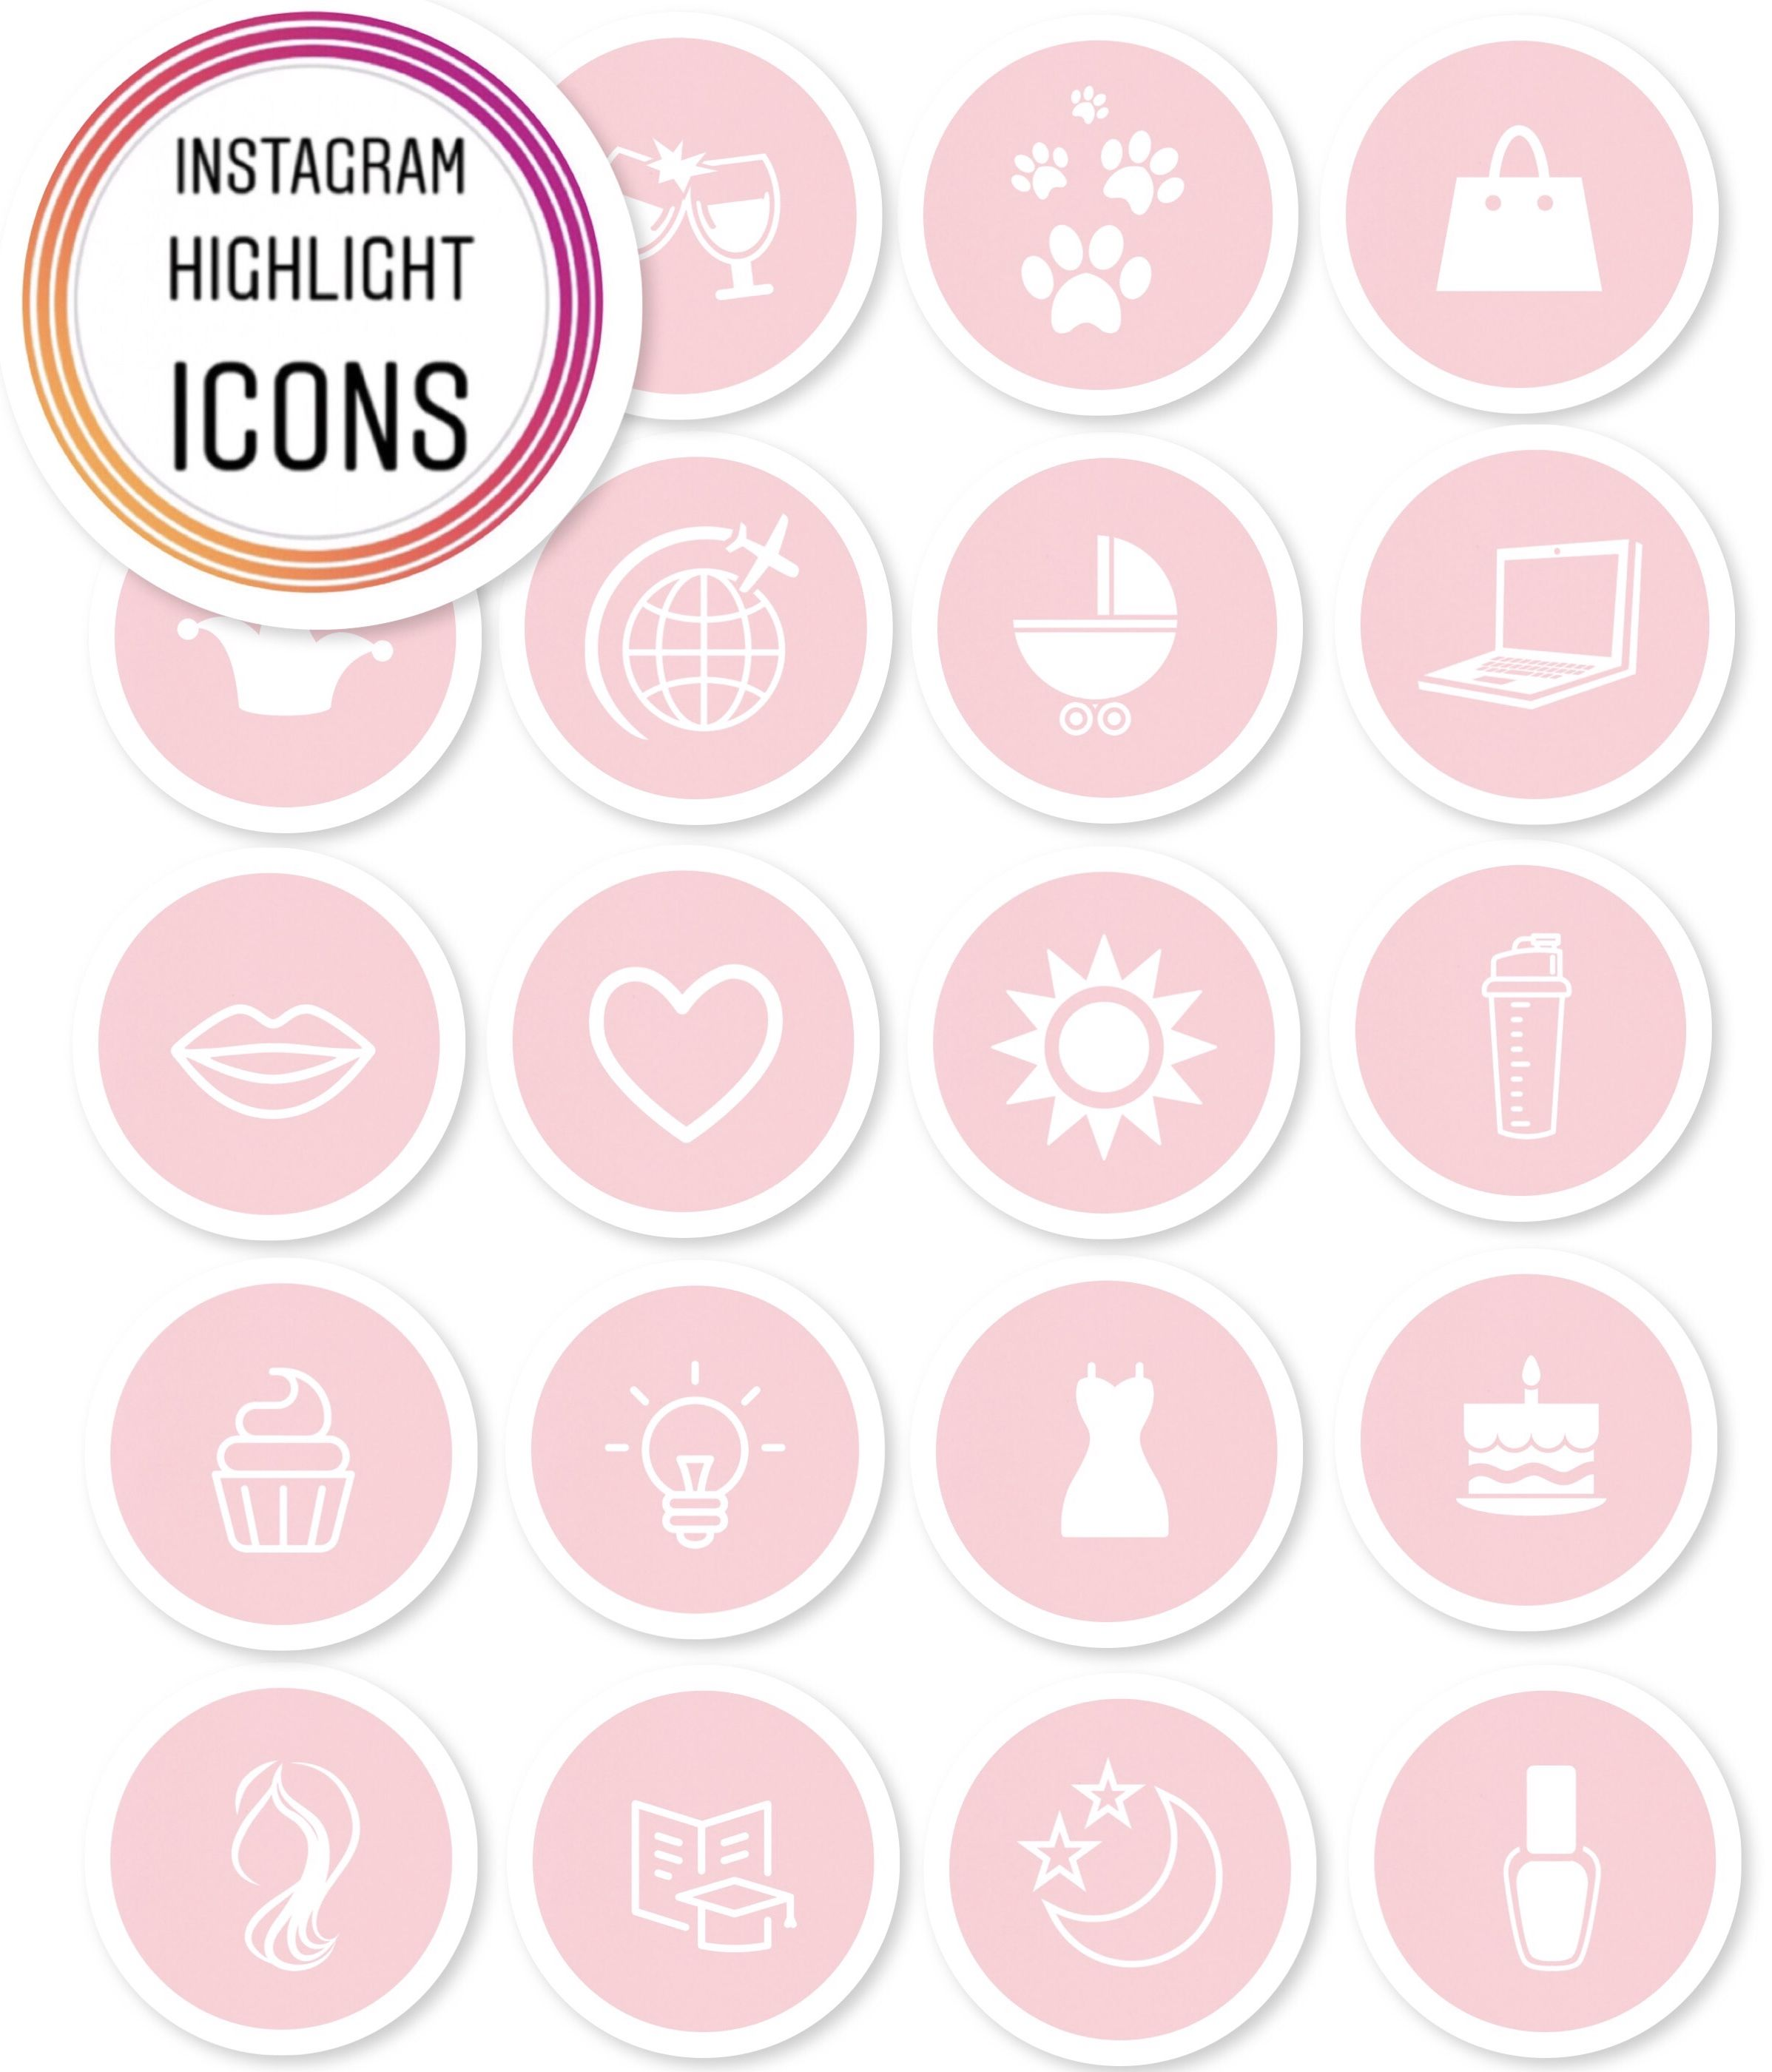 Instagram Story Highlight Icon Images | Set of 19! | Dicas ...